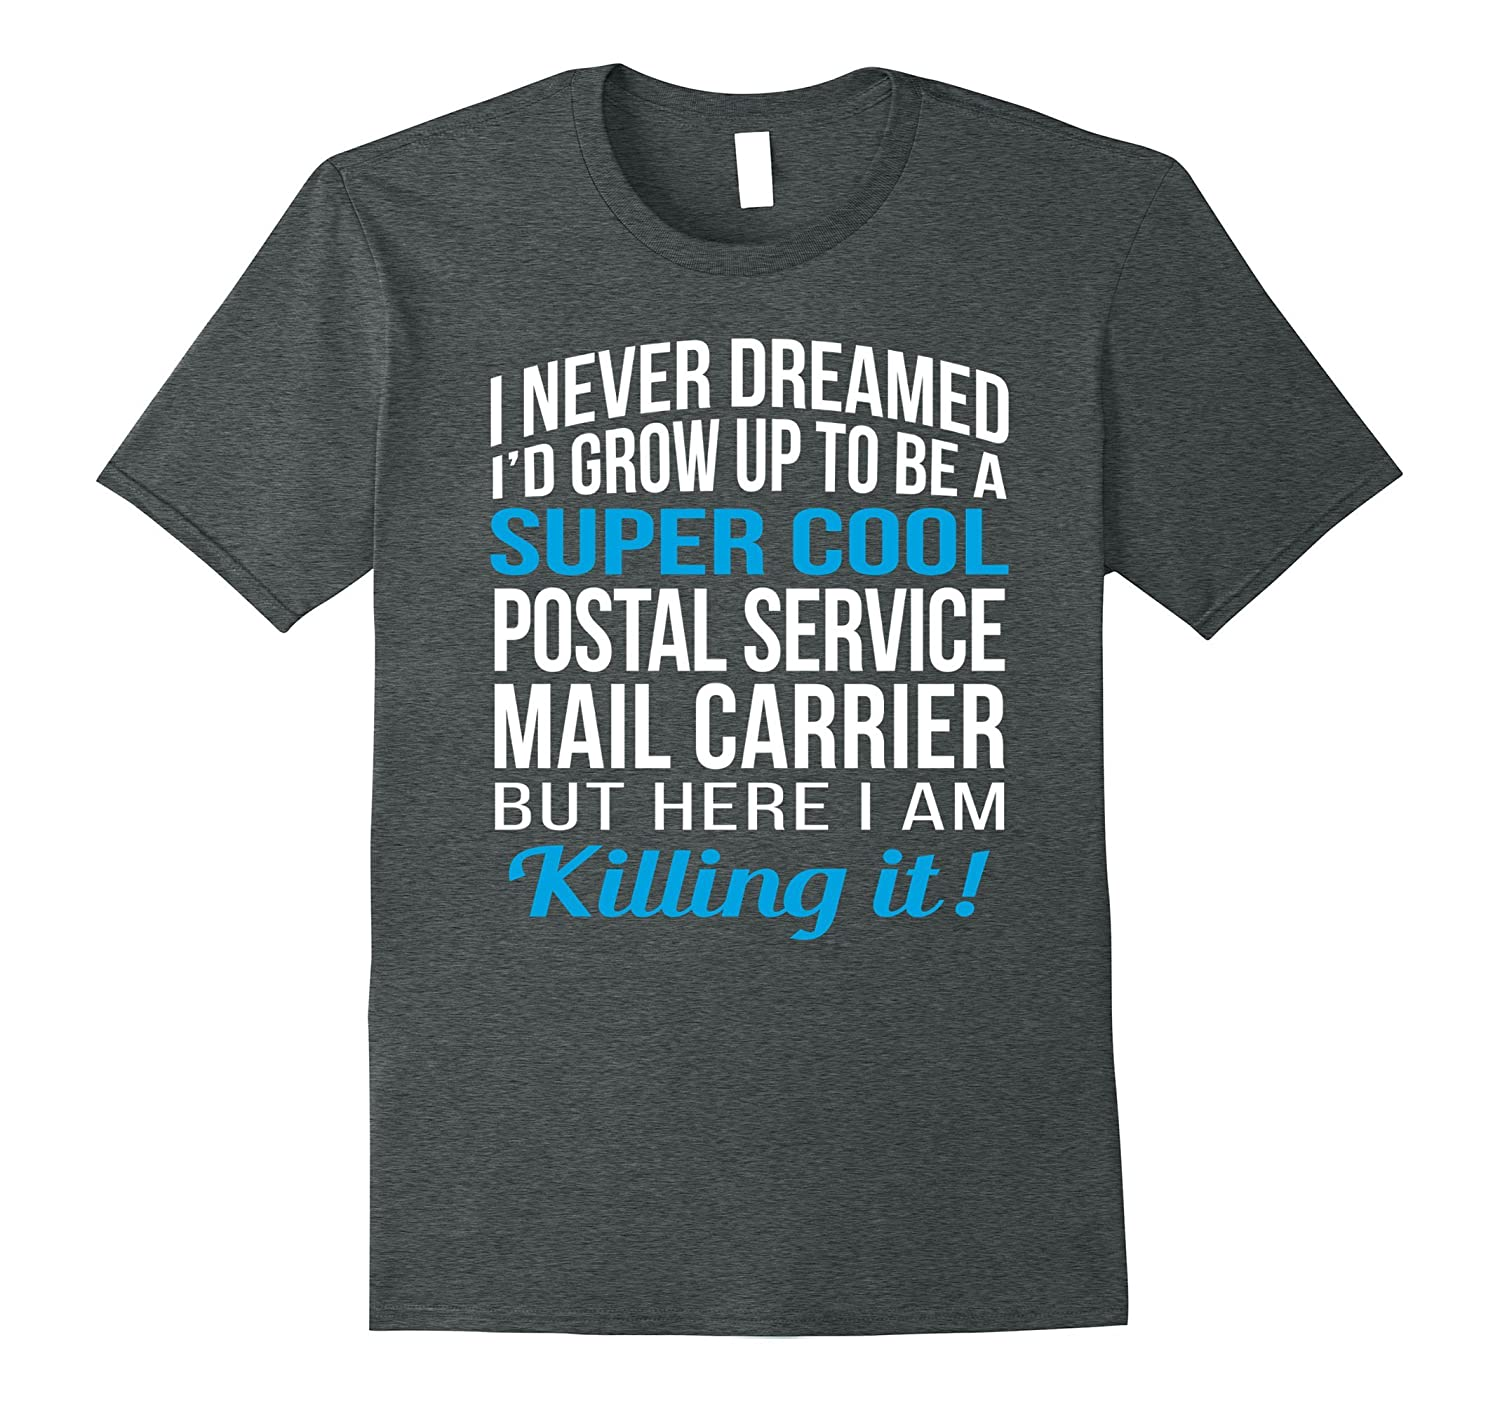 Super Cool Postal Service Mail Carrier Funny Gift T Shirt